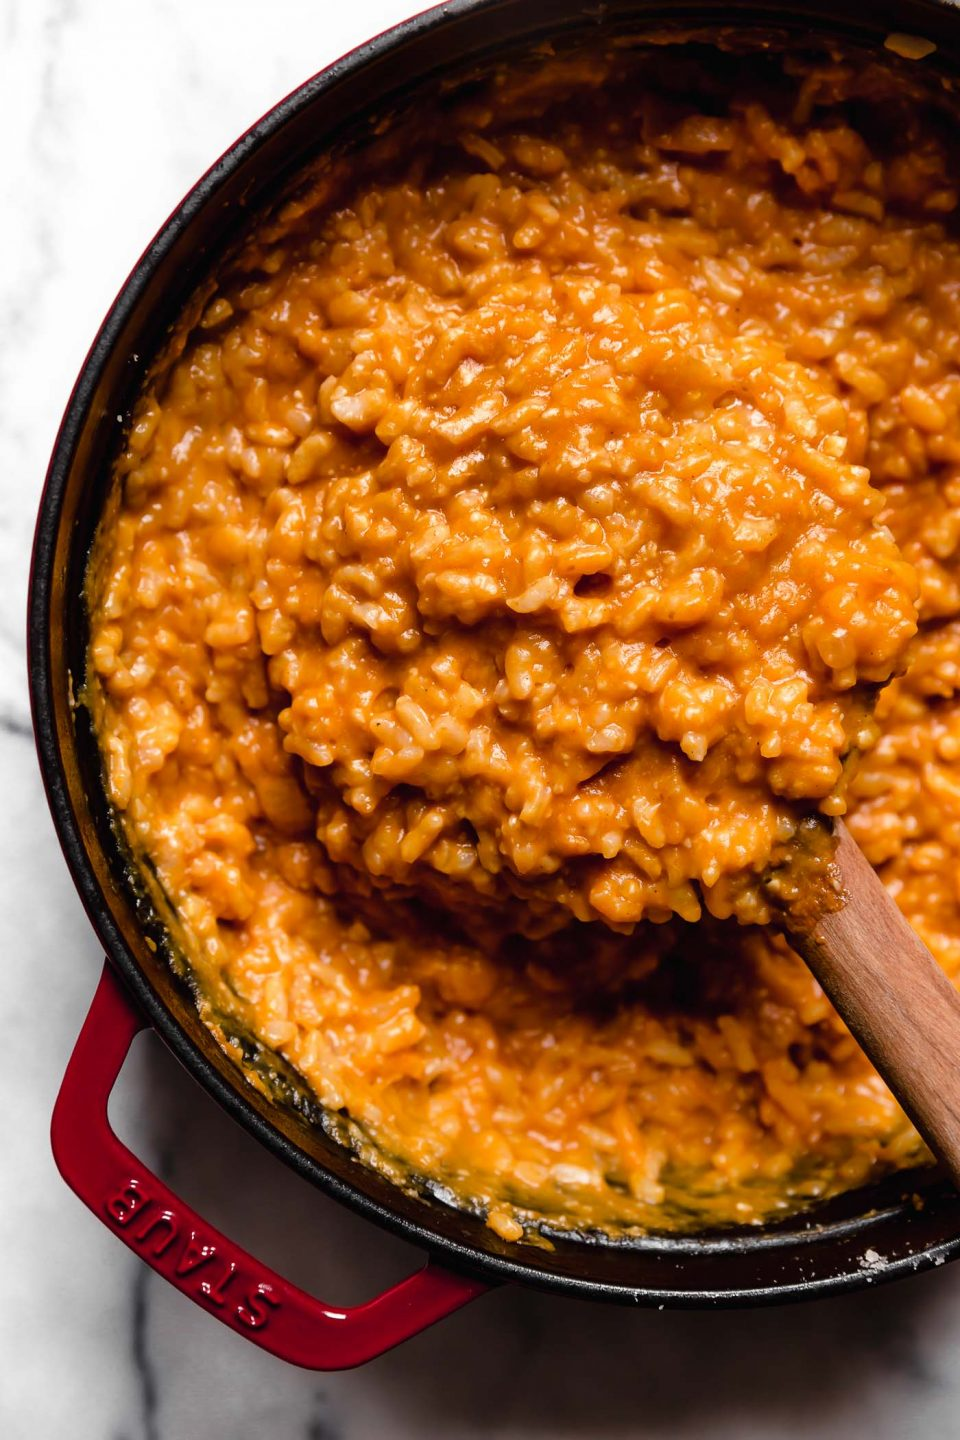 Pumpkin risotto shown in a large red Dutch oven. A wooden spoon is stirring the creamy risotto.